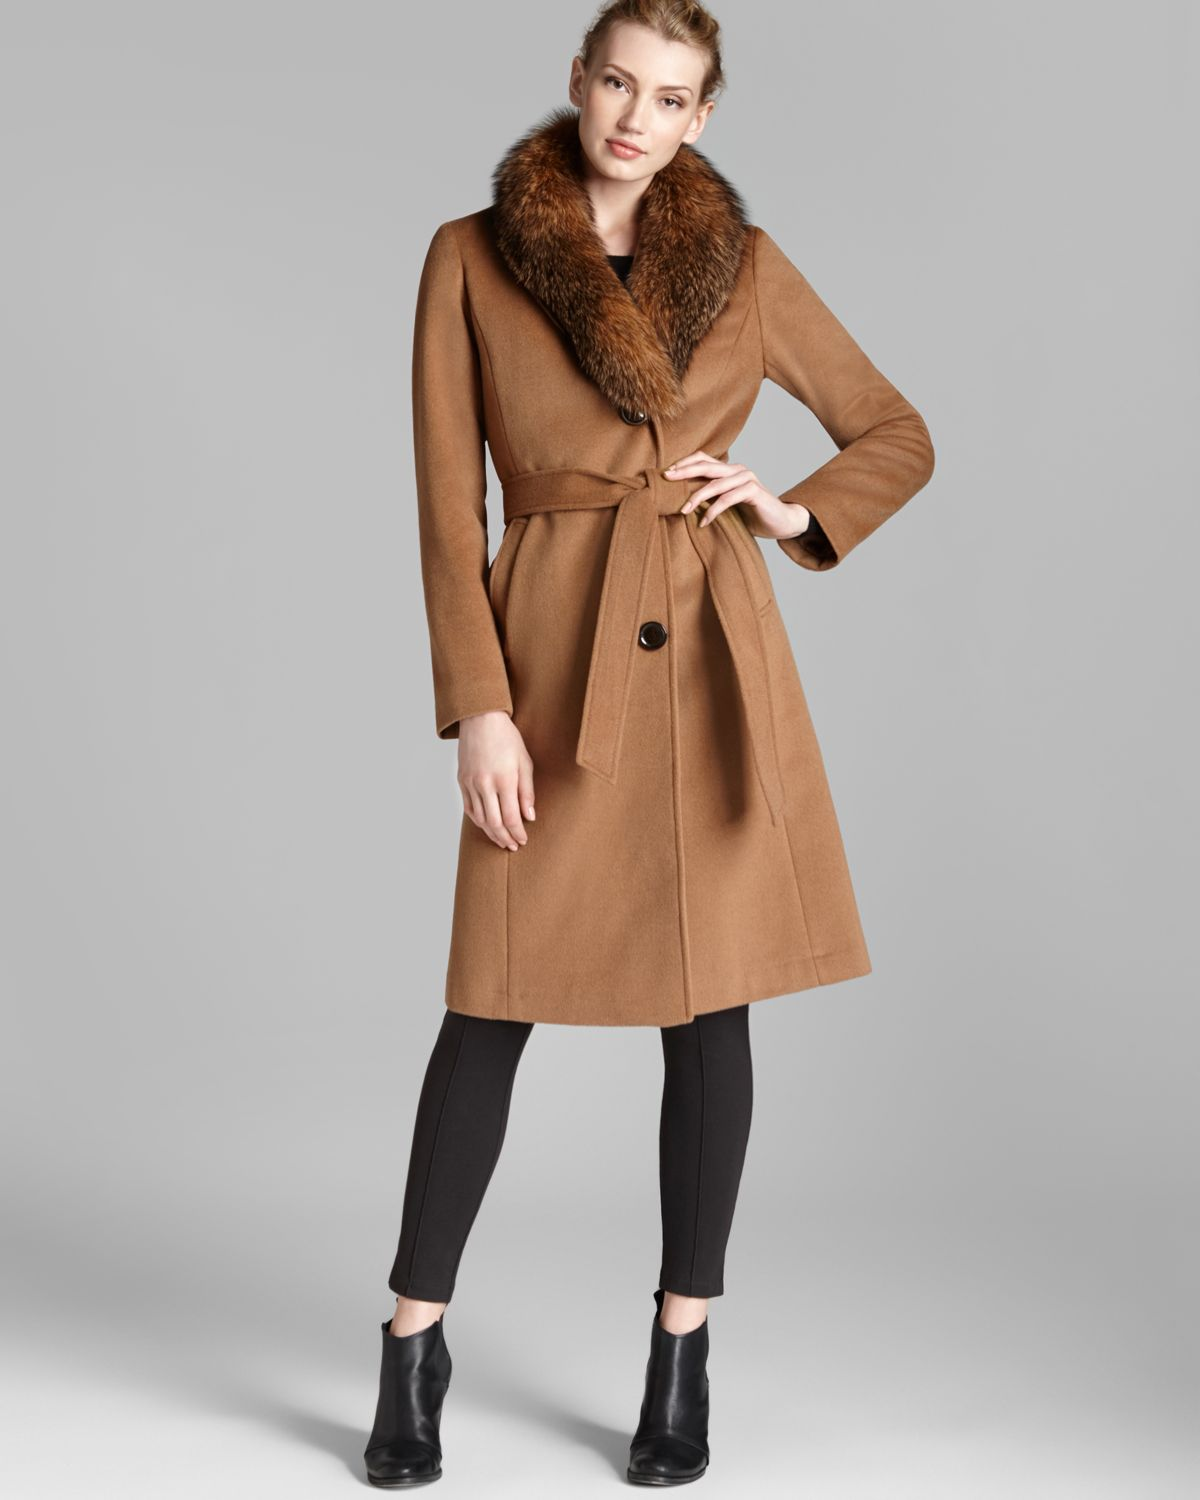 Ellen tracy Coat Fox Fur Collar Belted in Brown | Lyst